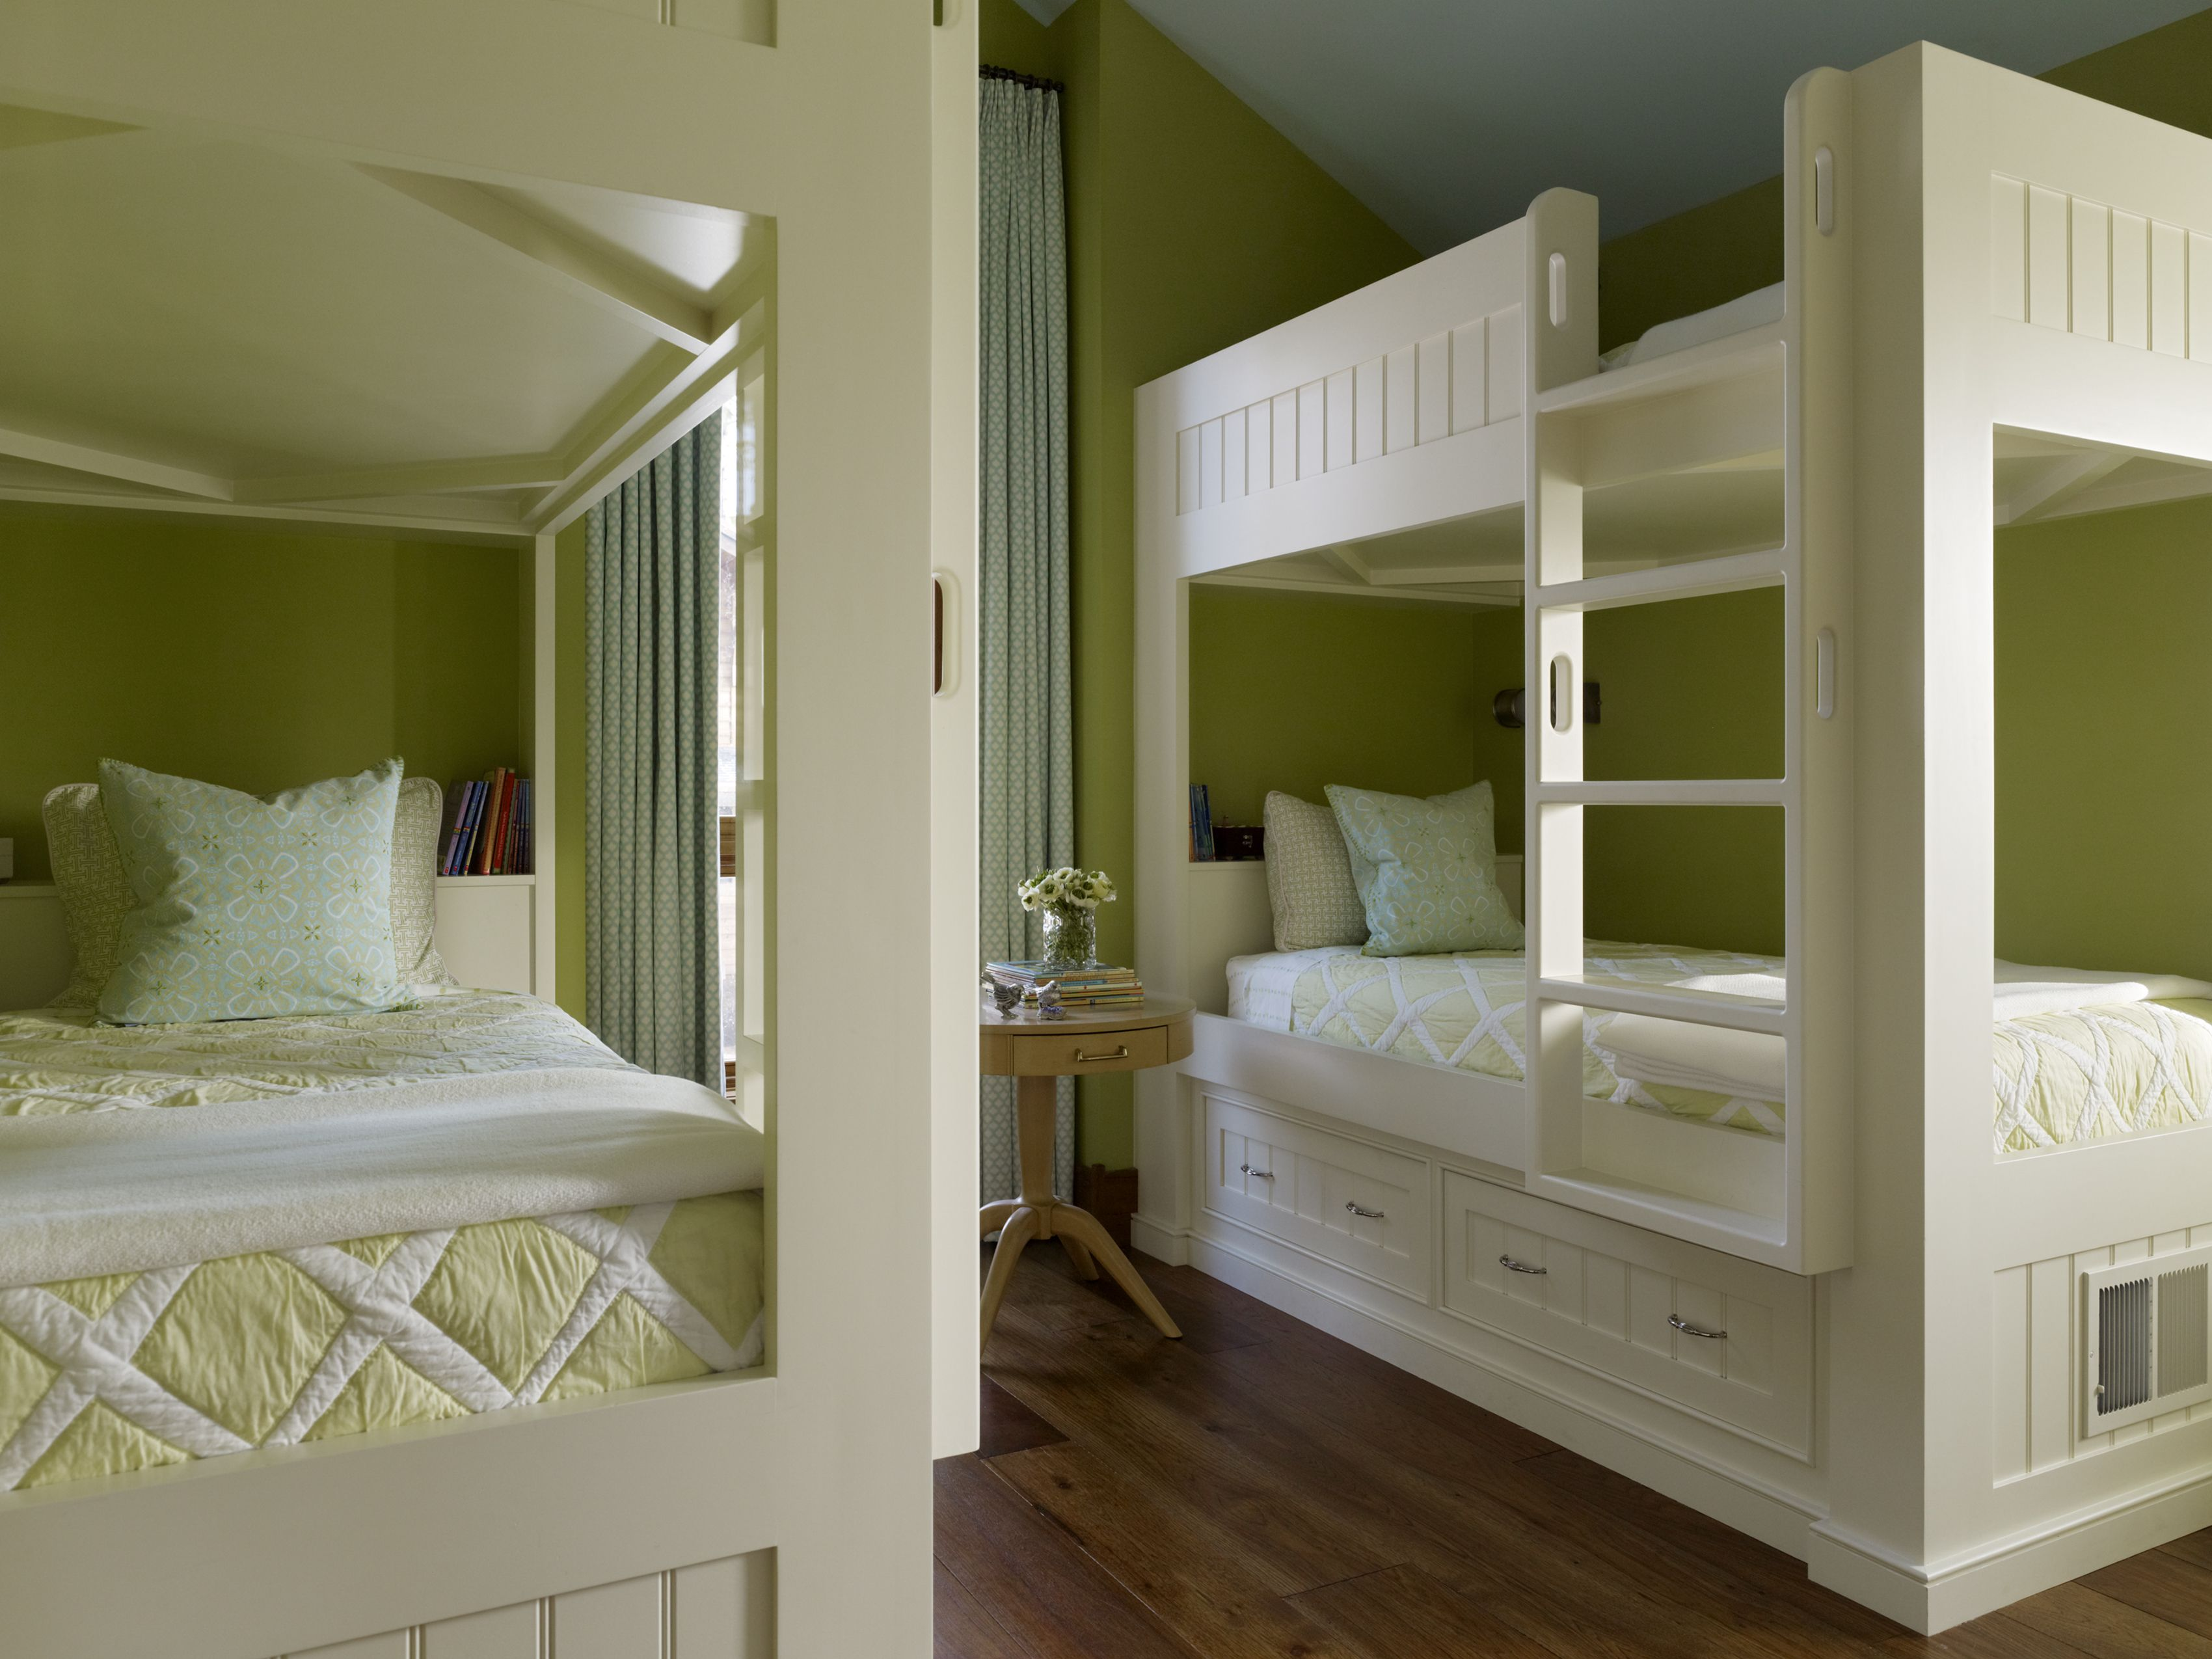 Built in loft bed ideas  Phenomenal built in bunk beds Martis Camp Getaway  Photograph by